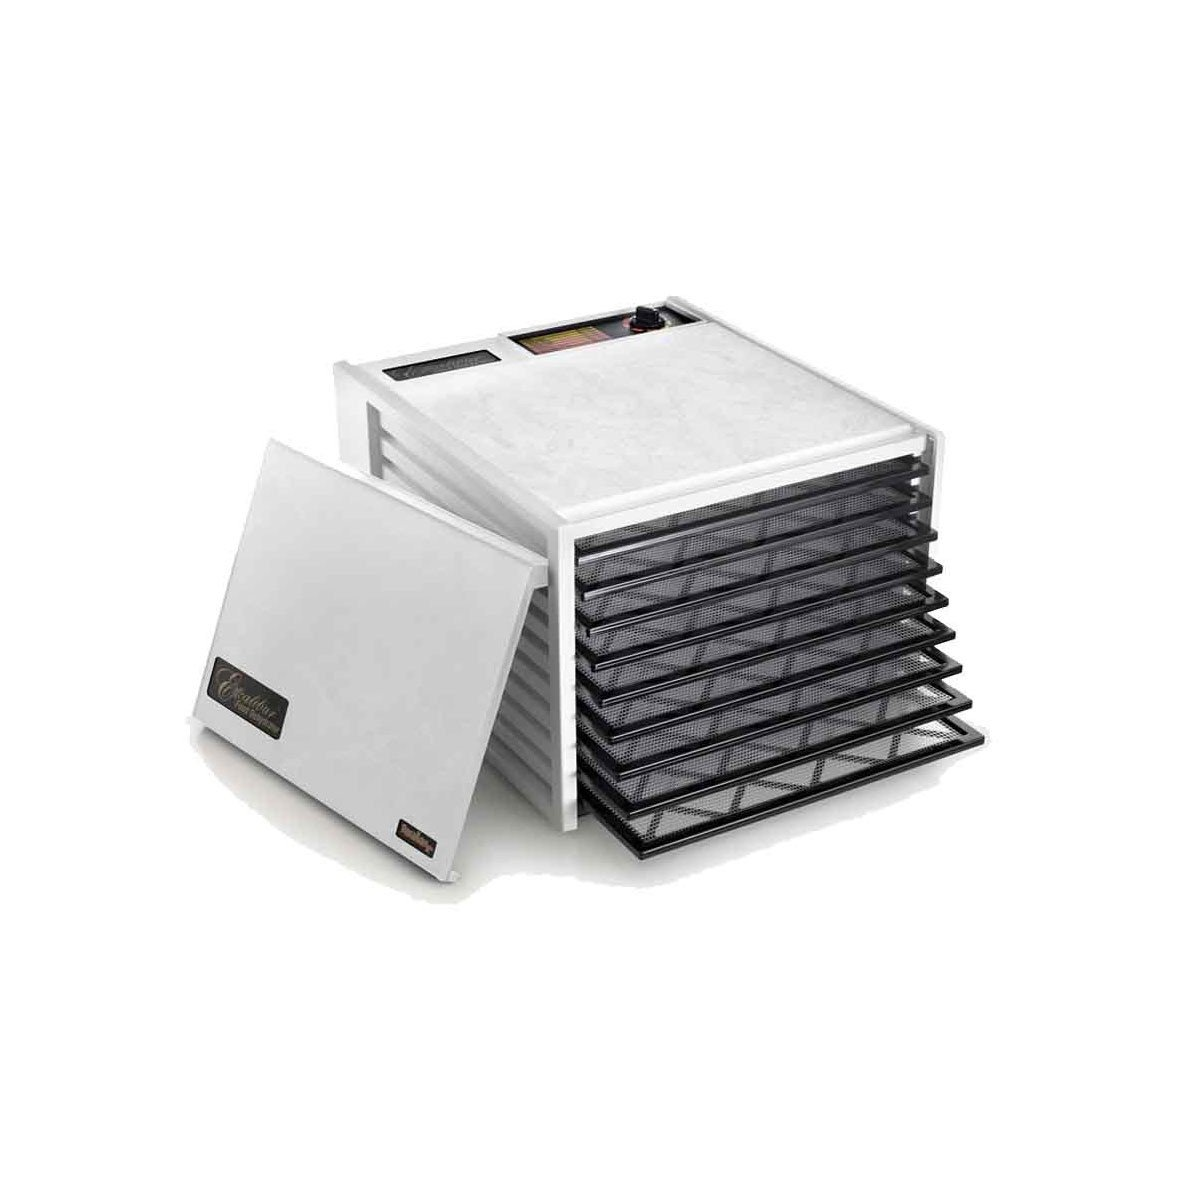 Excalibur Dehydrator 9 Tray in Black or White Excalibur Australia Food Dehydrators White / Yes Timer at Little Earth Nest Eco Shop